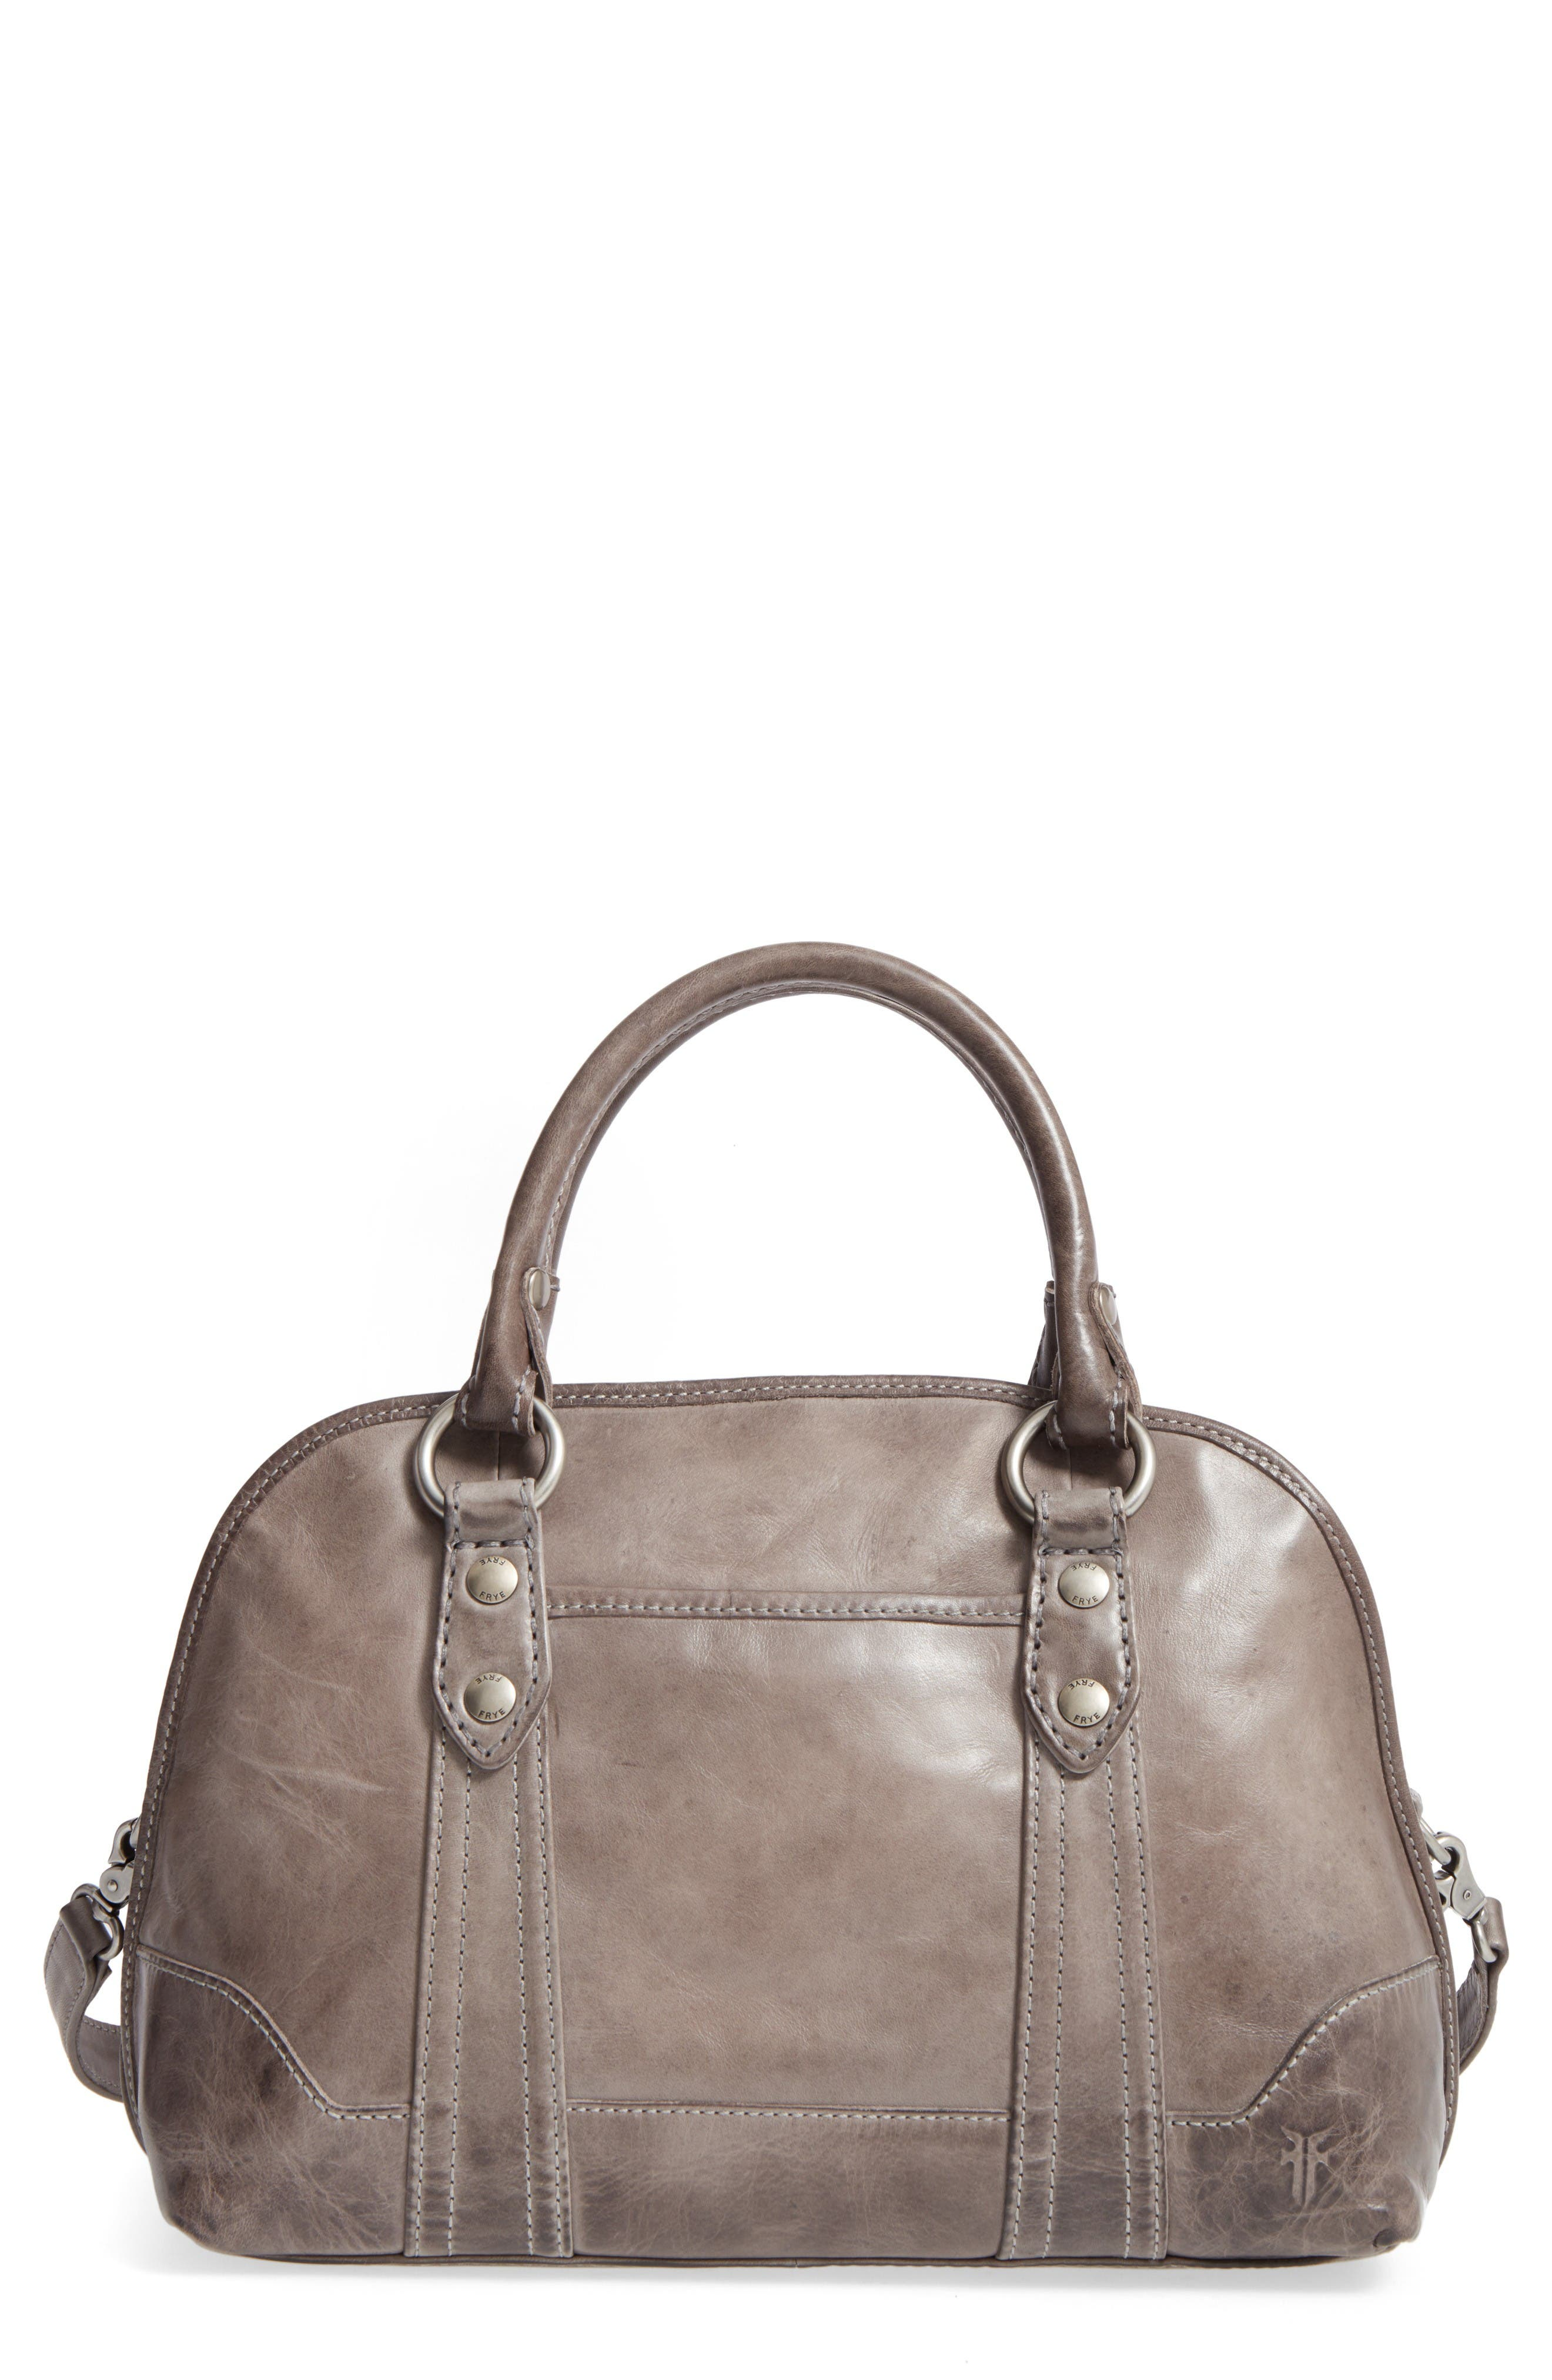 'Melissa' Domed Leather Satchel,                             Main thumbnail 1, color,                             Ice